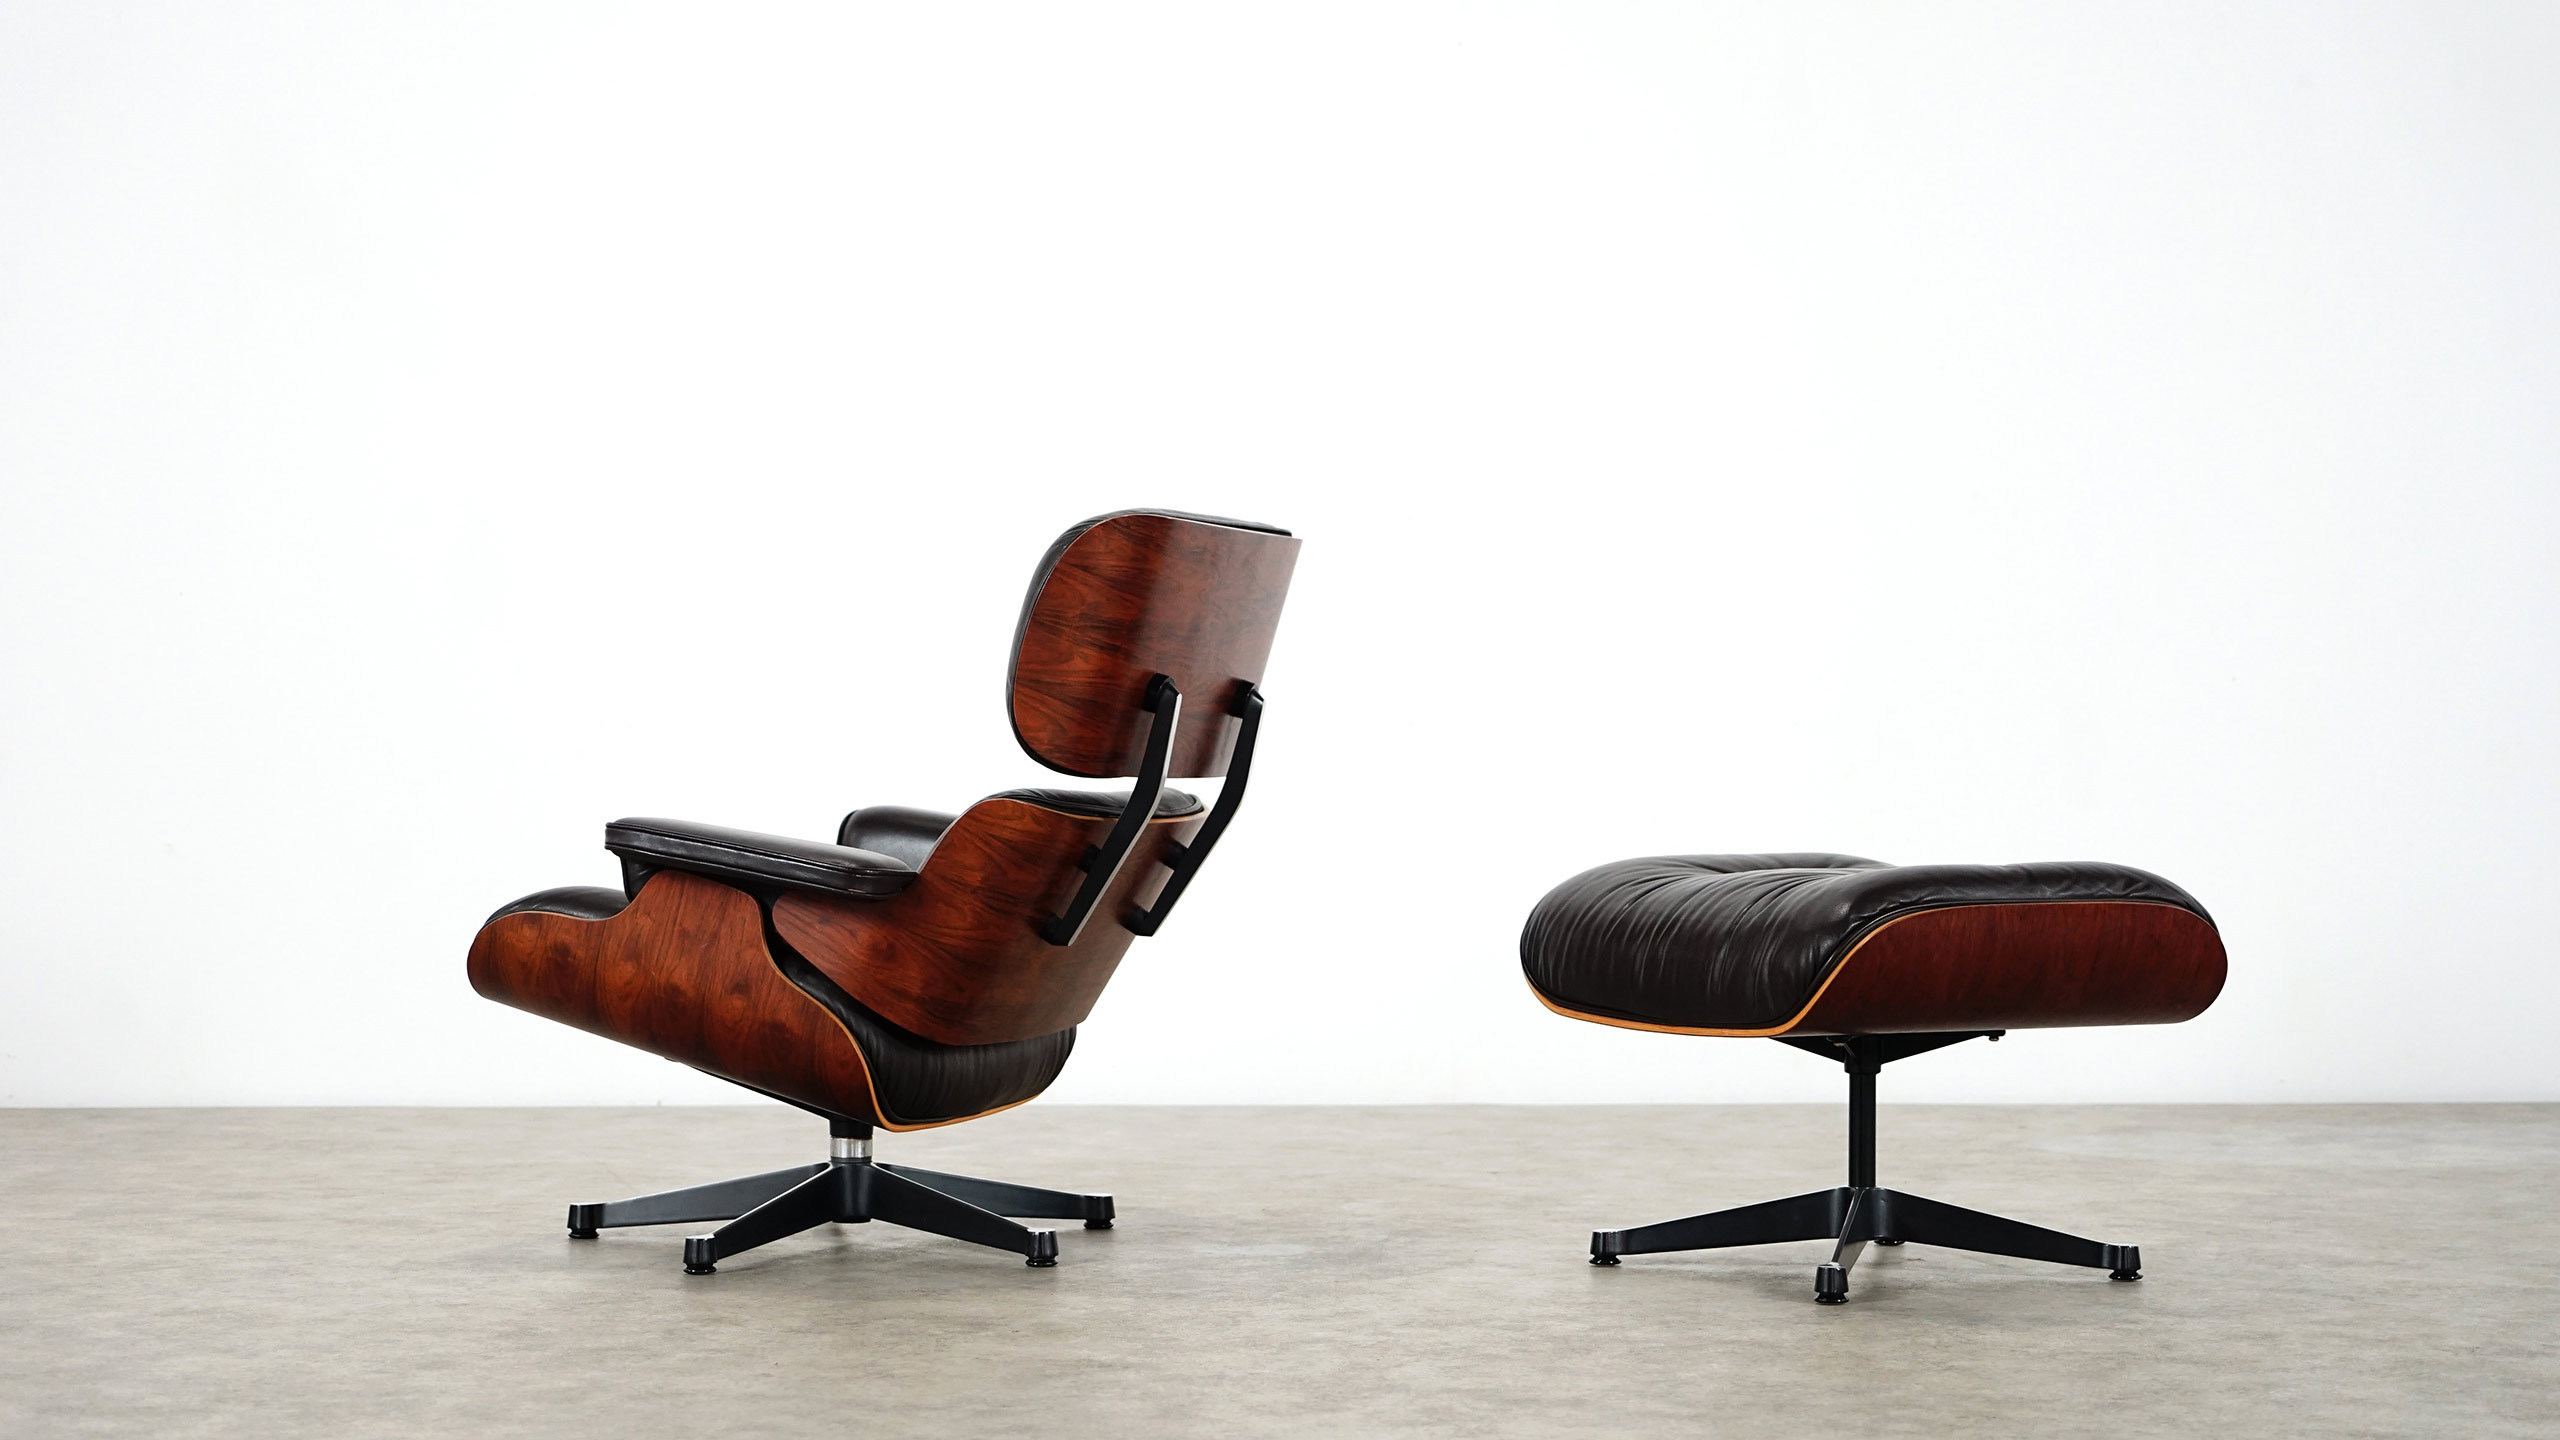 Charles eames lounge chair ottoman by herman miller for Charles eames lounge chair nachbildung